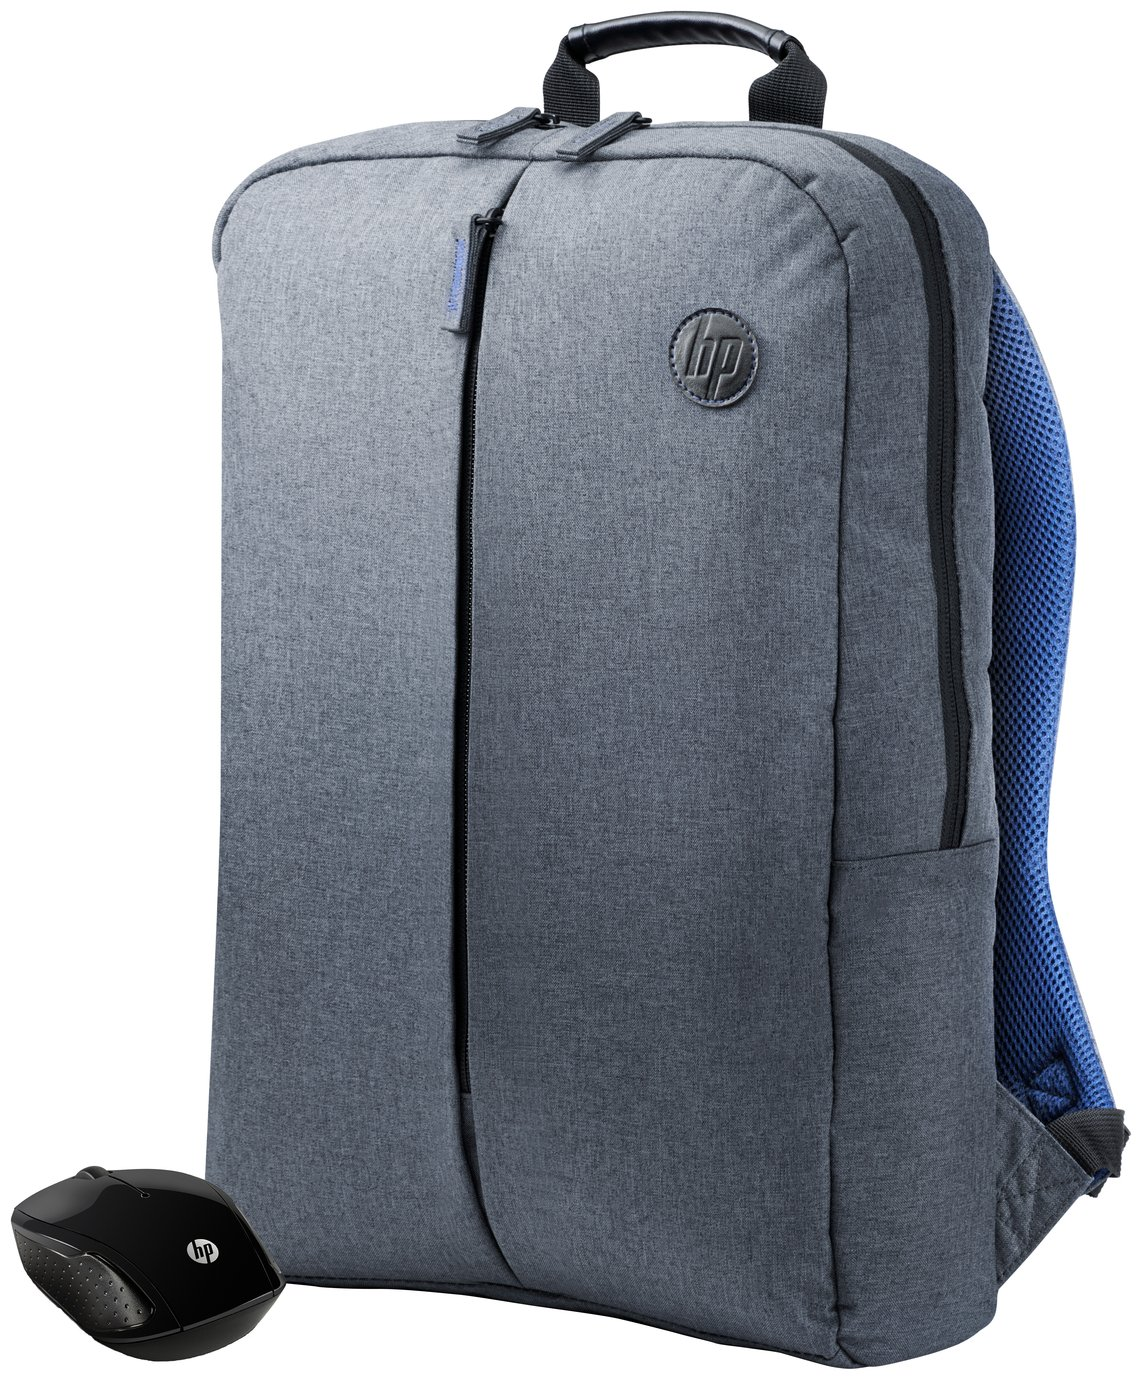 HP 15.6 Inch Laptop Backpack and Wireless Mouse